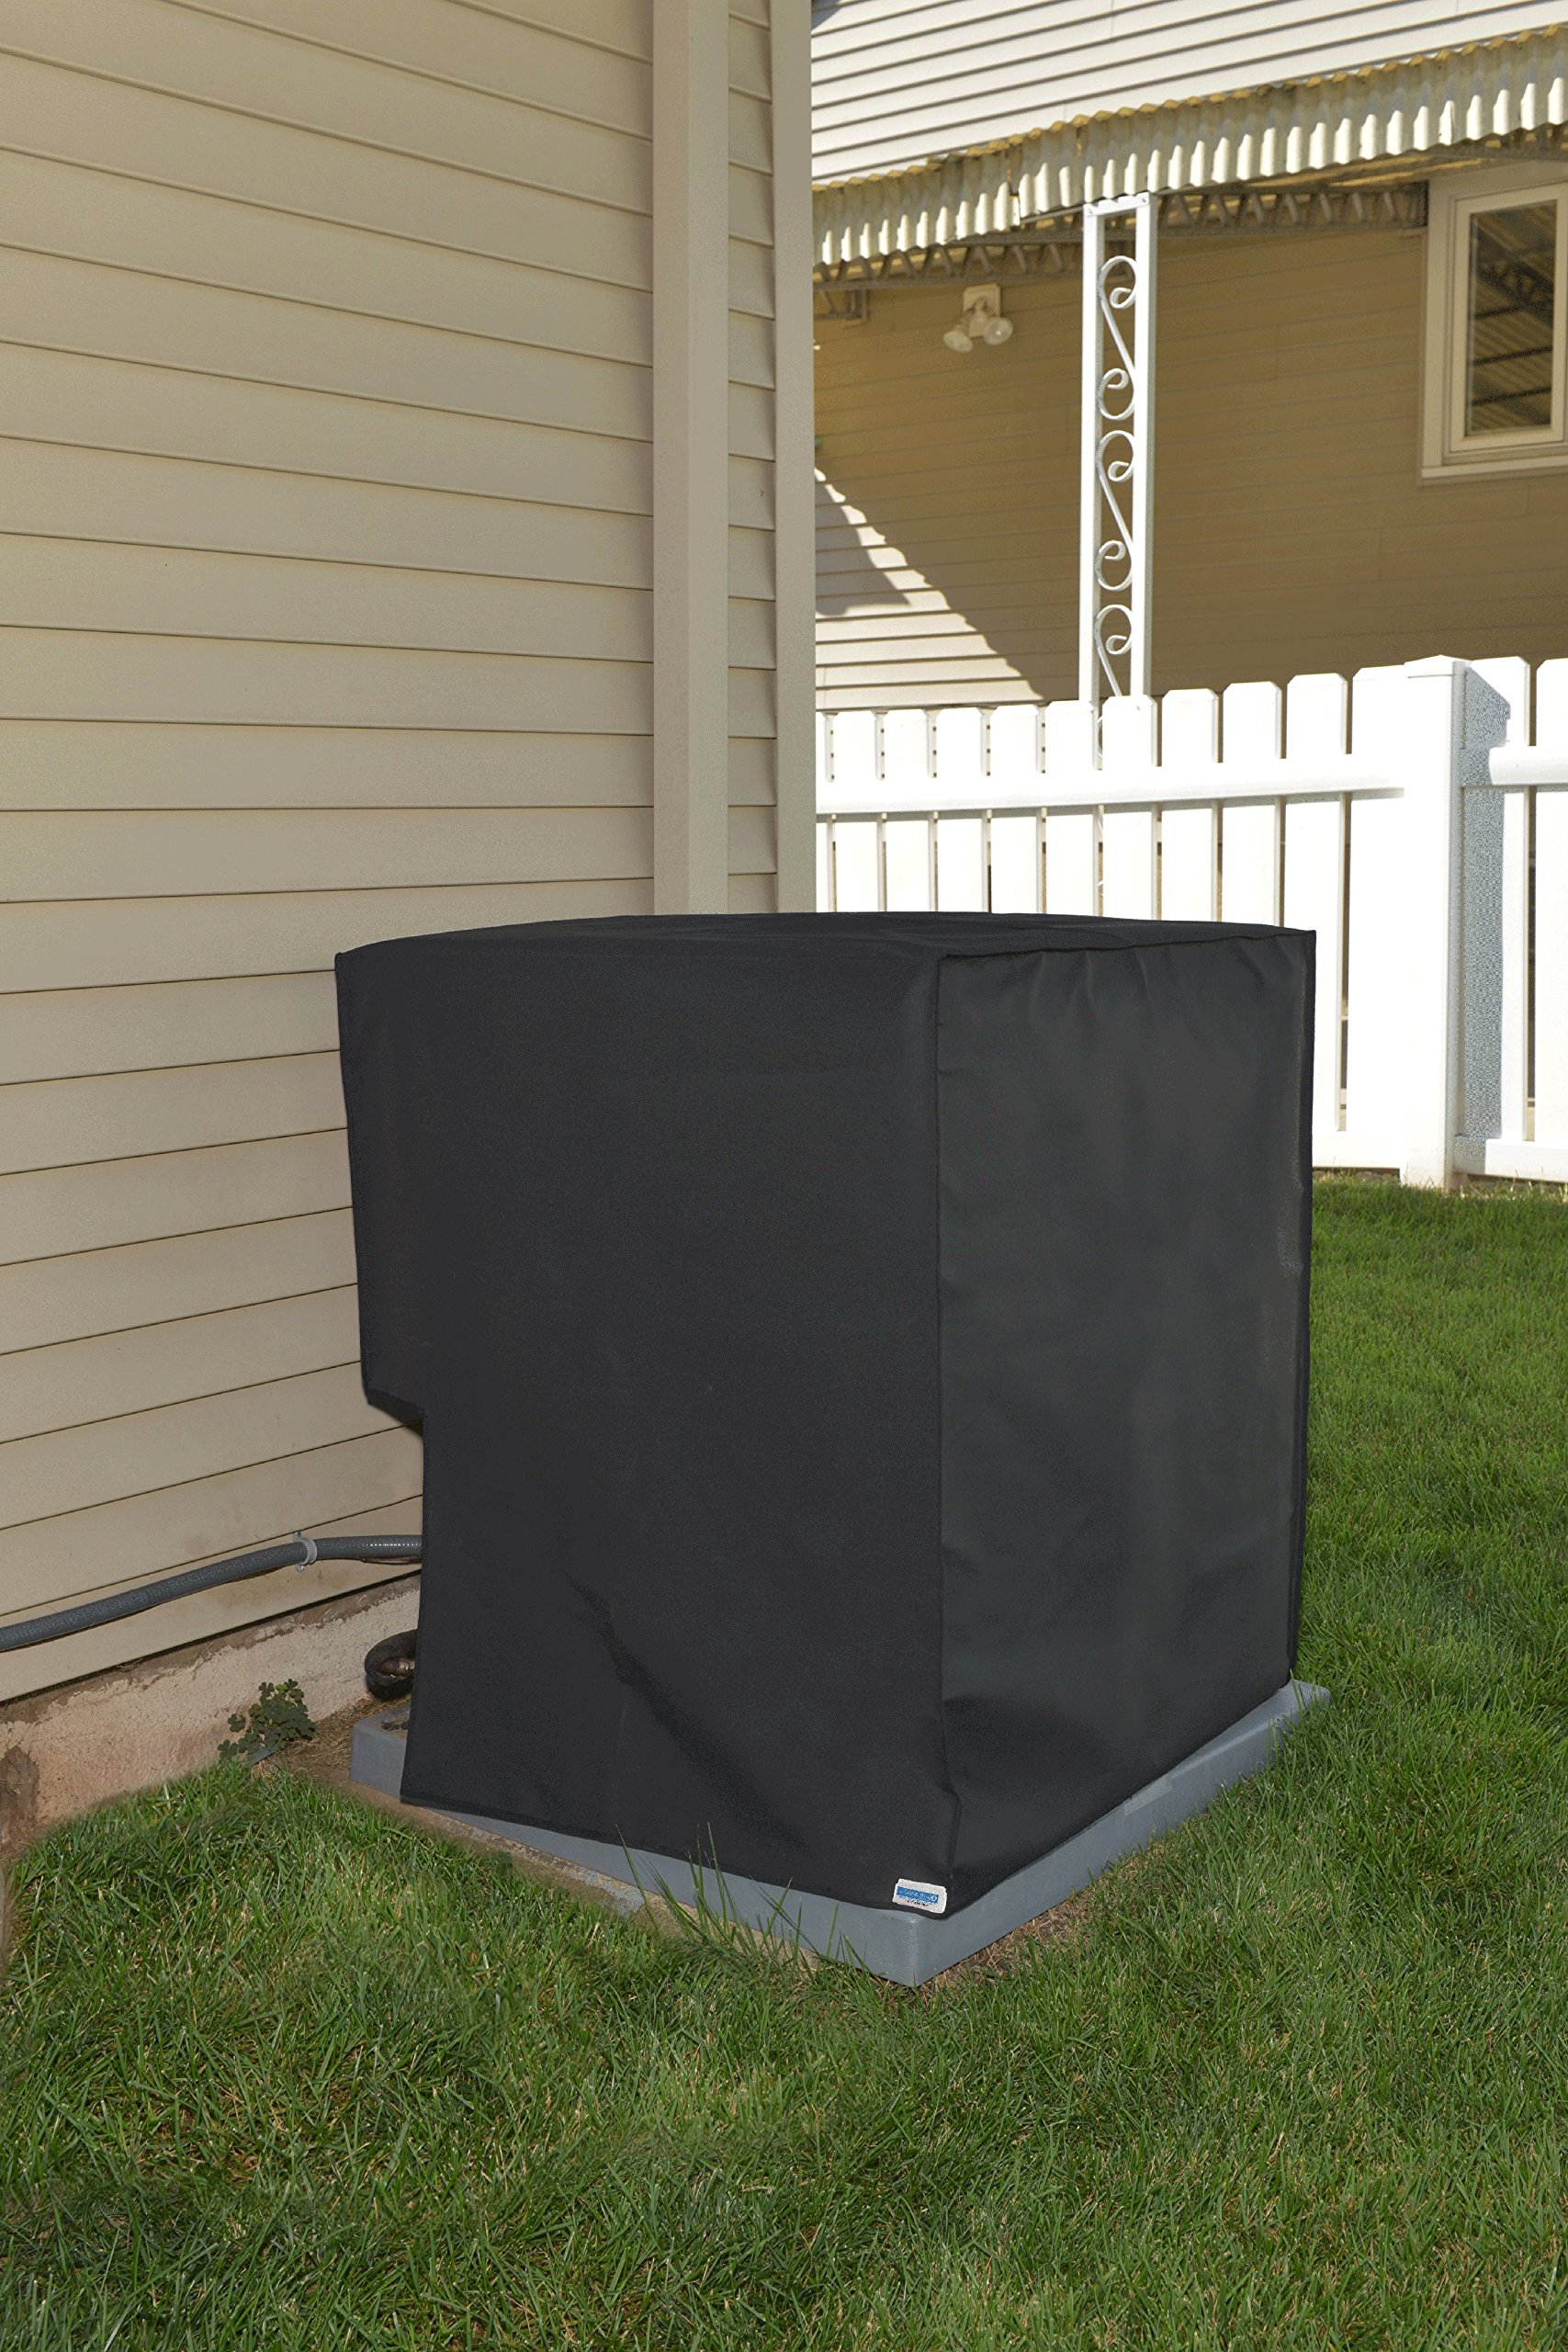 Air Conditioning System Unit GOODMAN 2.5 MODEL GSX140311 Waterproof Black Nylon Cover By Comp Bind Technology Dimensions 29''W x 29''D x 32''H by Comp Bind Technology